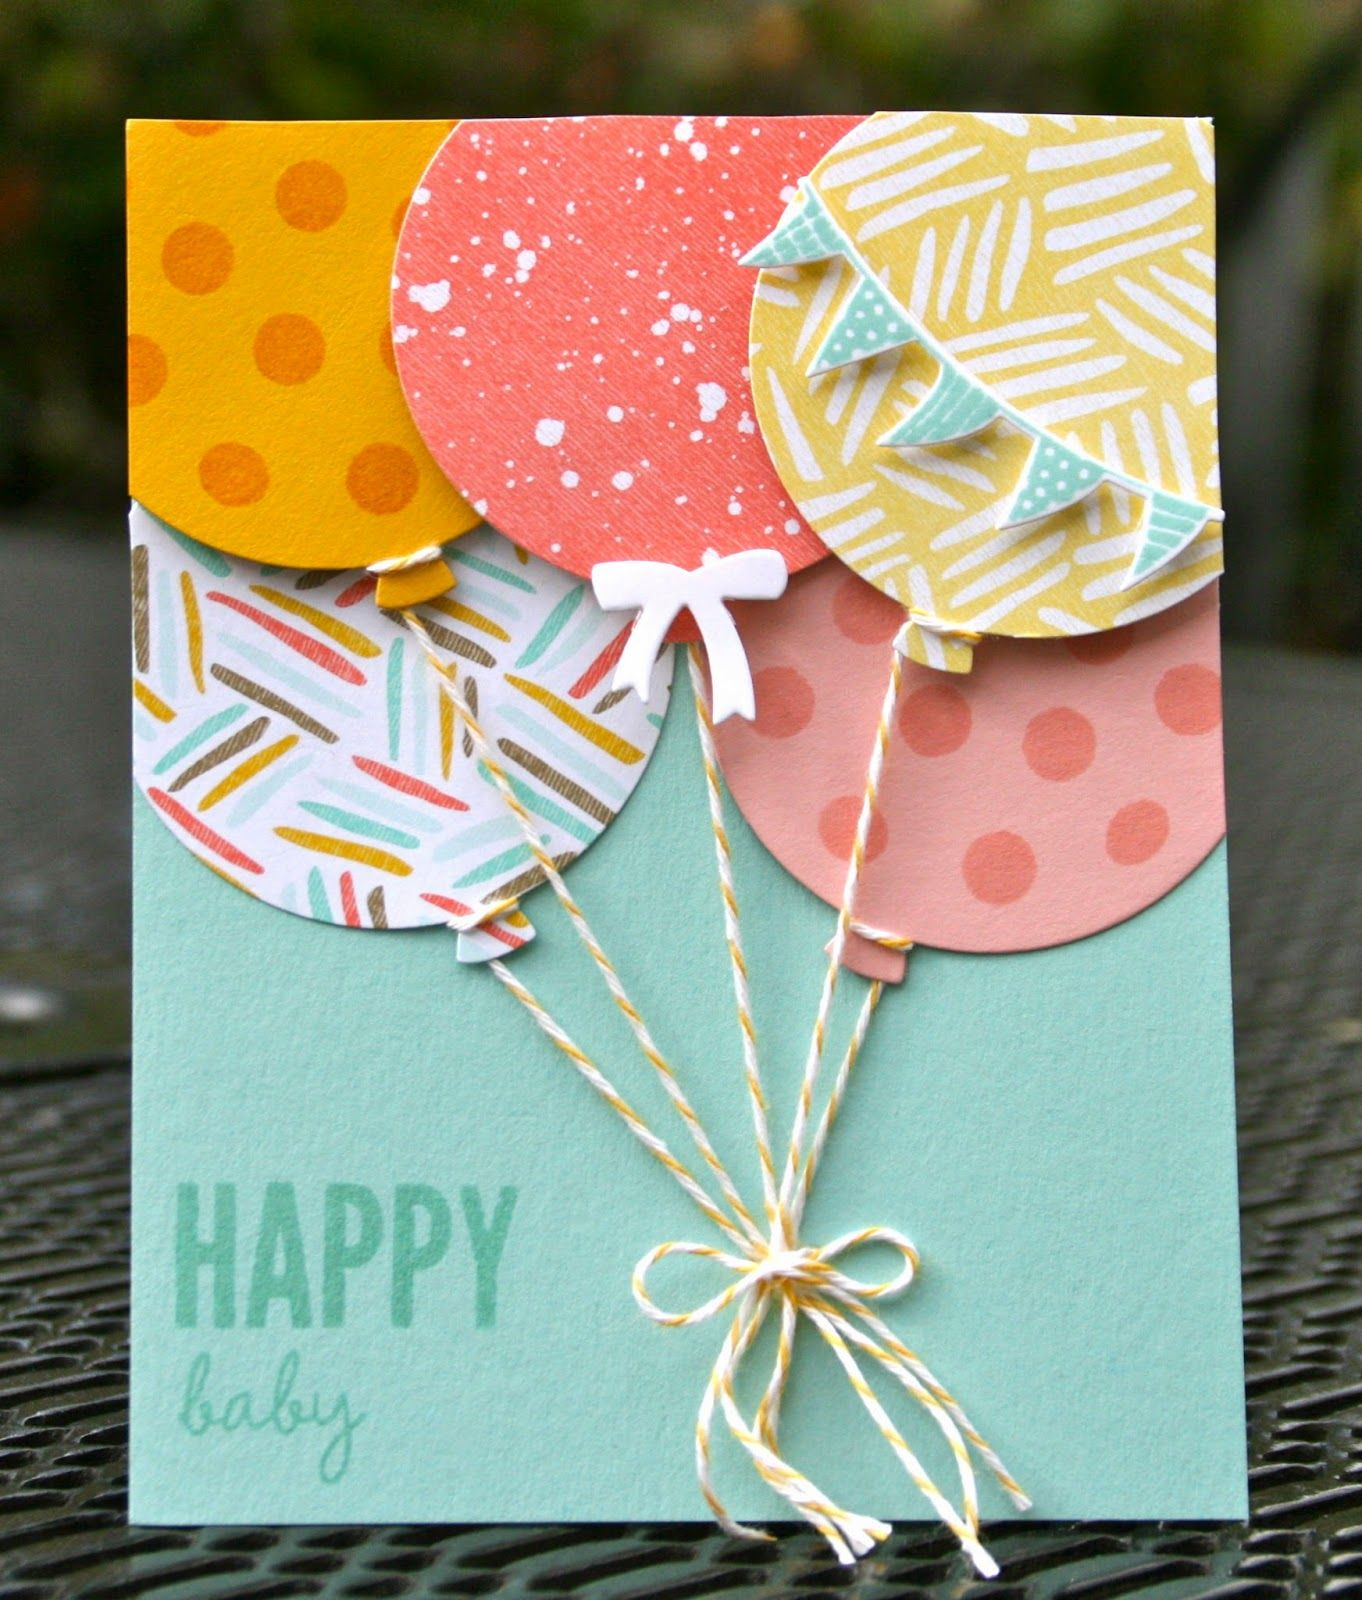 Baby Card Making Ideas Part - 46: Attaching Balloon Strings:Krystalu0027s Cards: Stampinu0027 Up! Celebrate Today  Coastal Coral · Baby Birthday CardBalloon ...